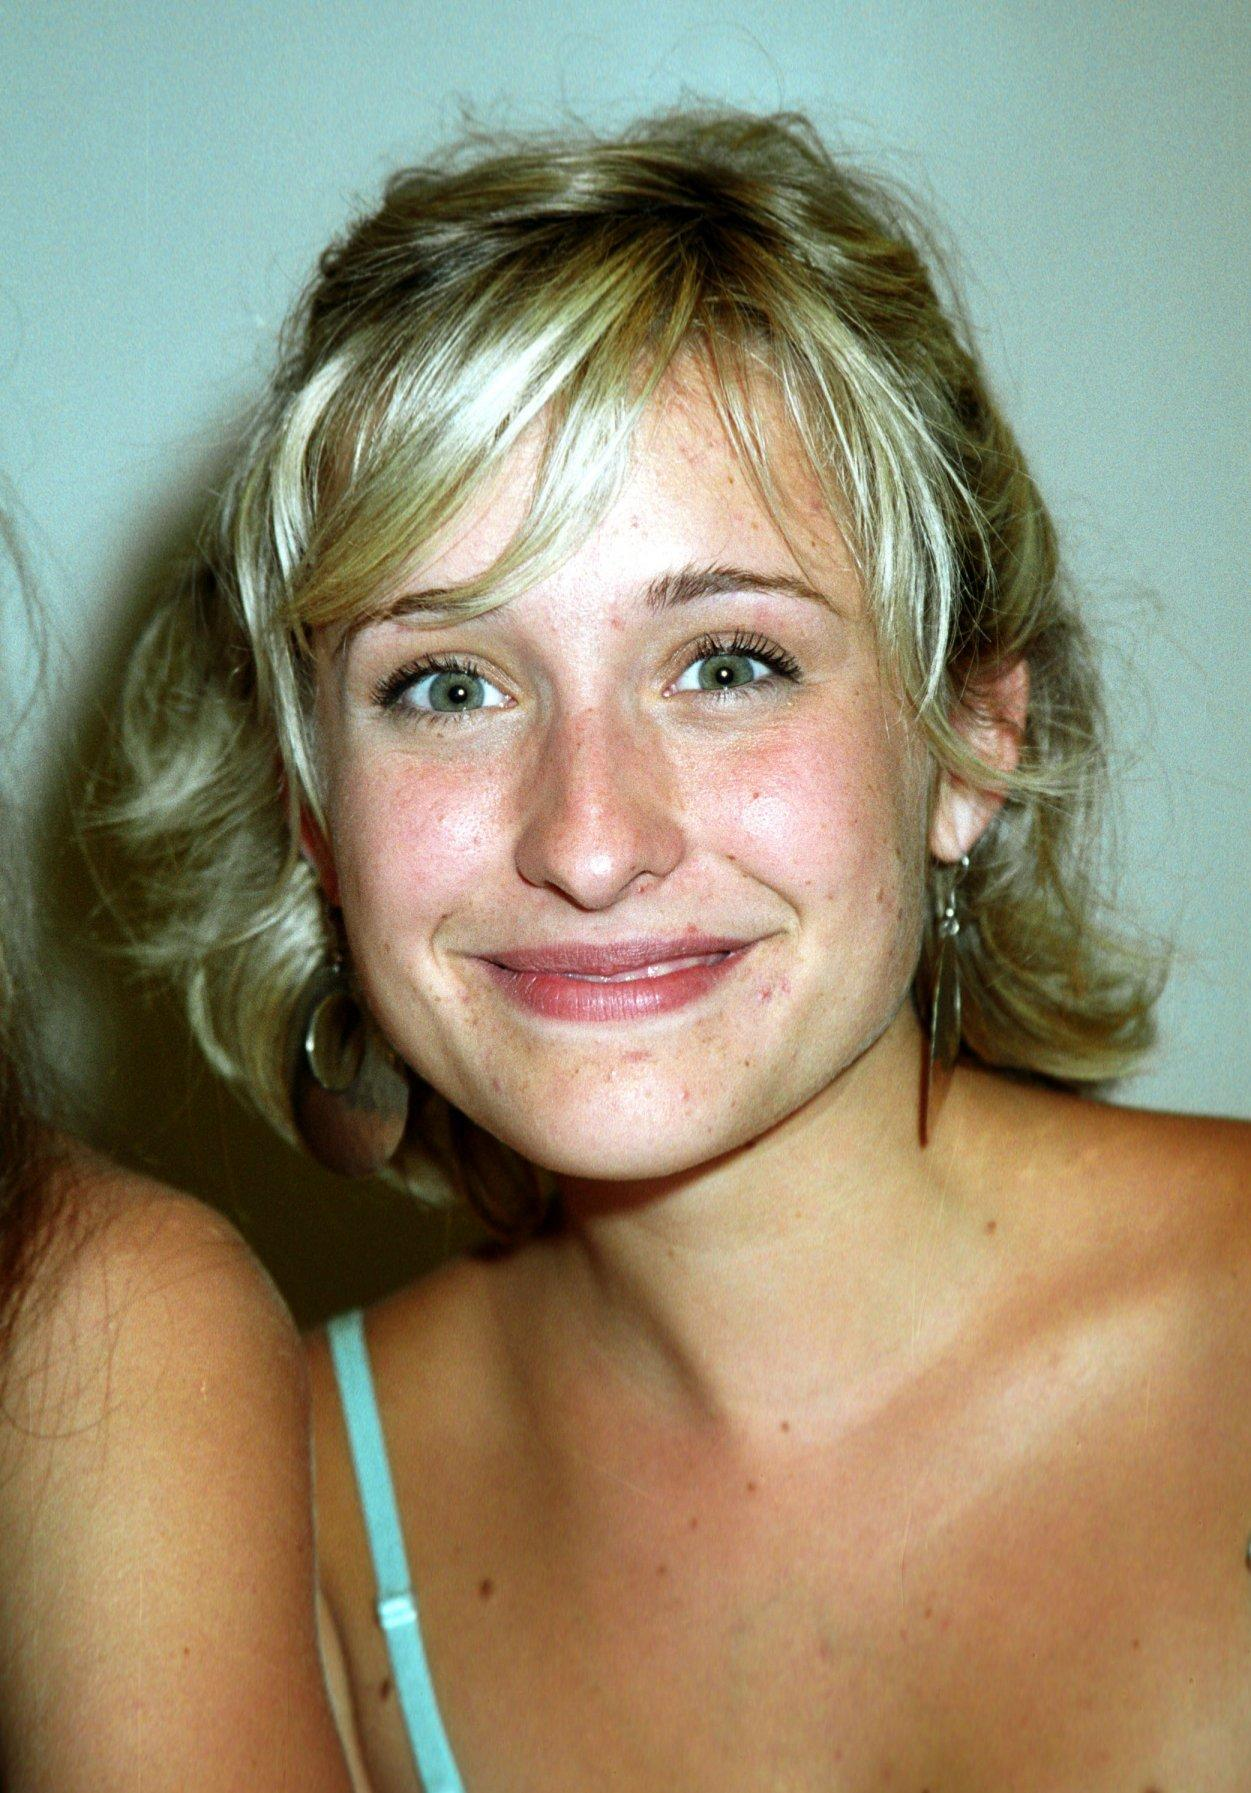 Leaked Allison Mack nude photos 2019